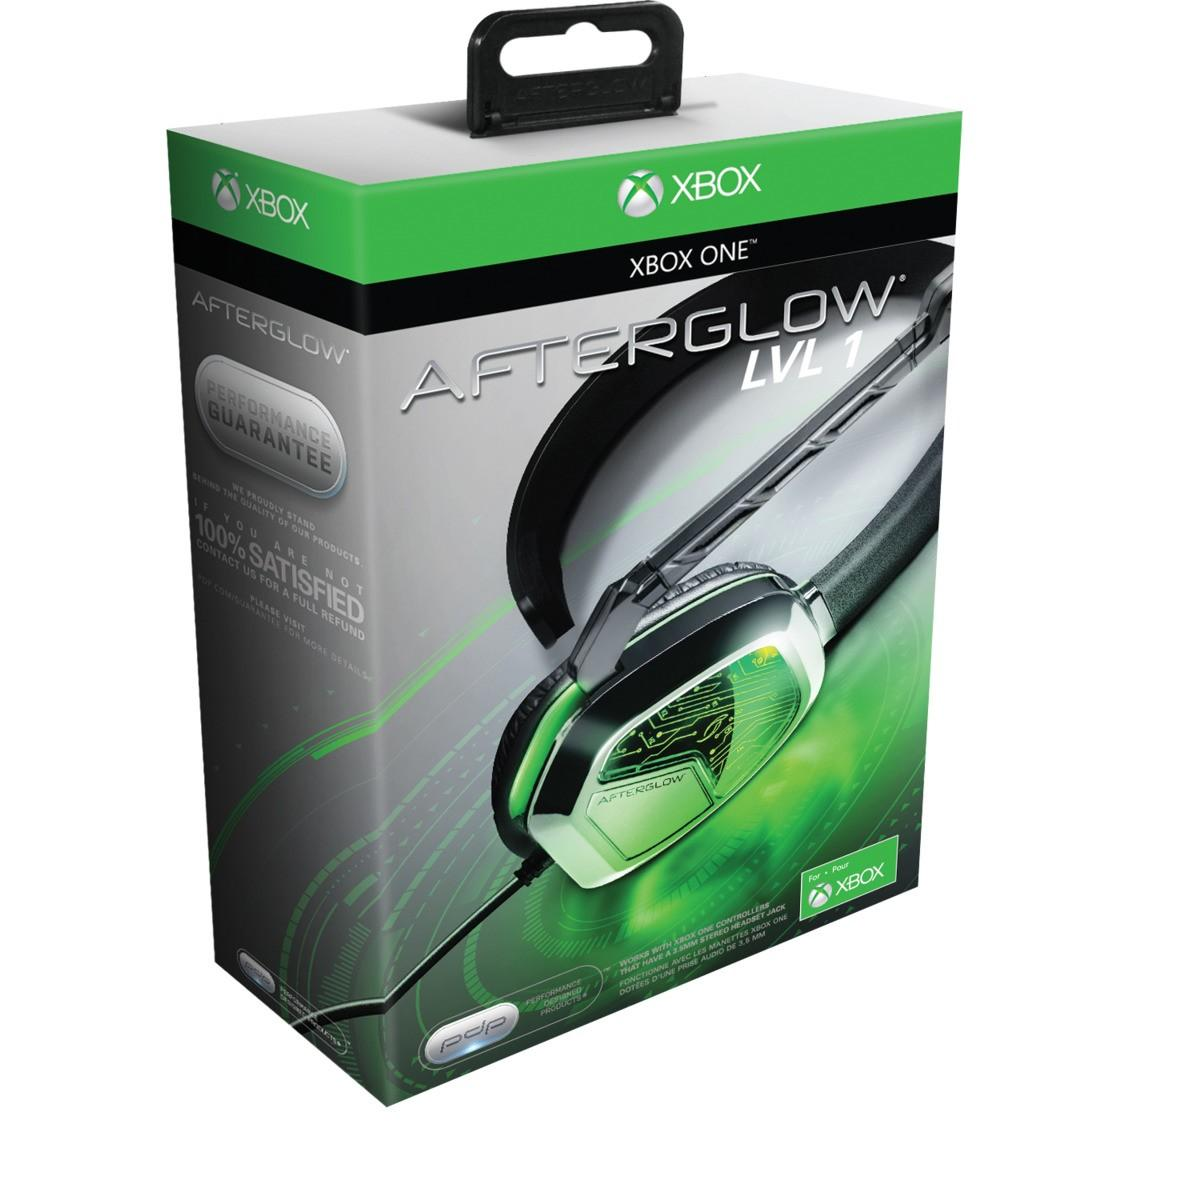 Discount Gaming Consoles 19